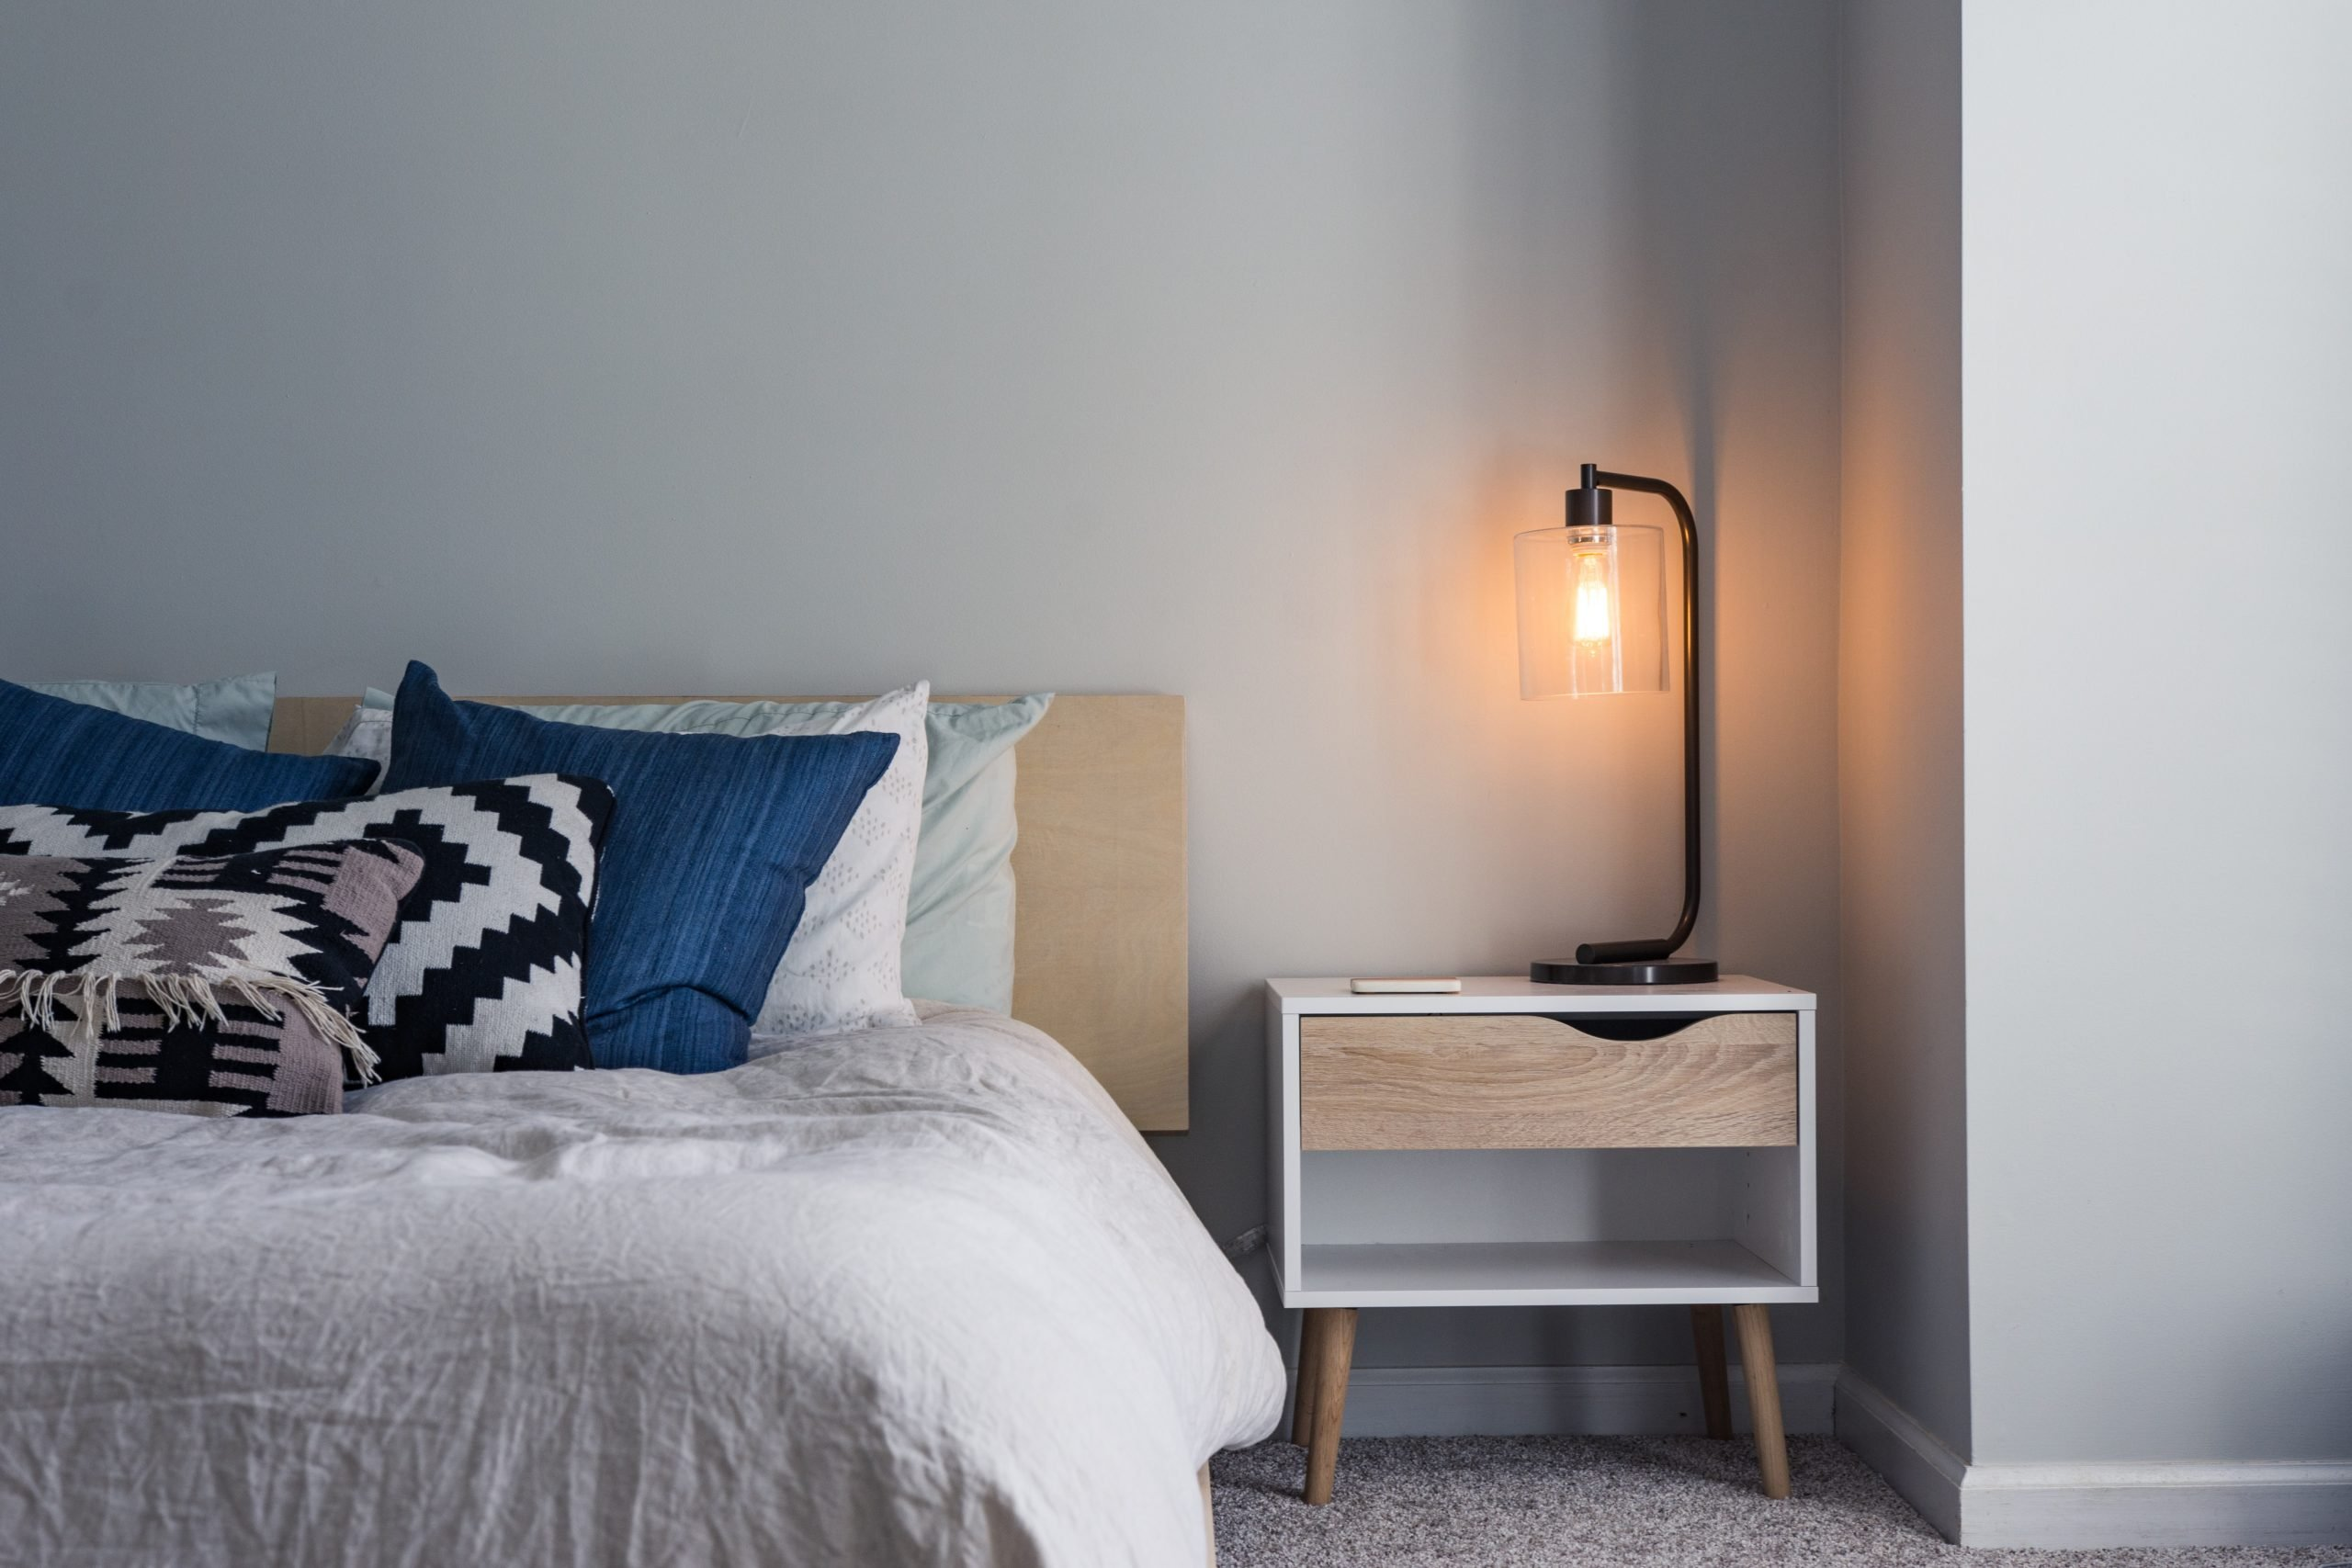 3 Reasons Why Cleaning Your Bedroom First Will Motivate You to Clean the Rest of Your Home